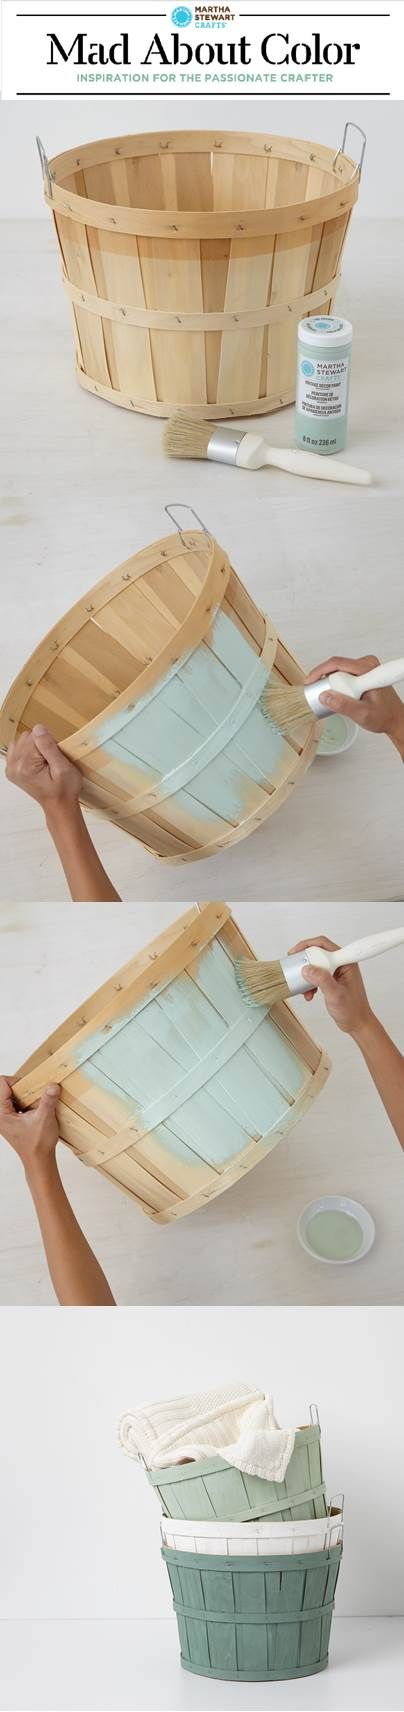 Customize orchard baskets with Vintage Decor! Such a great idea. #DIY #Customized #ForTheHome